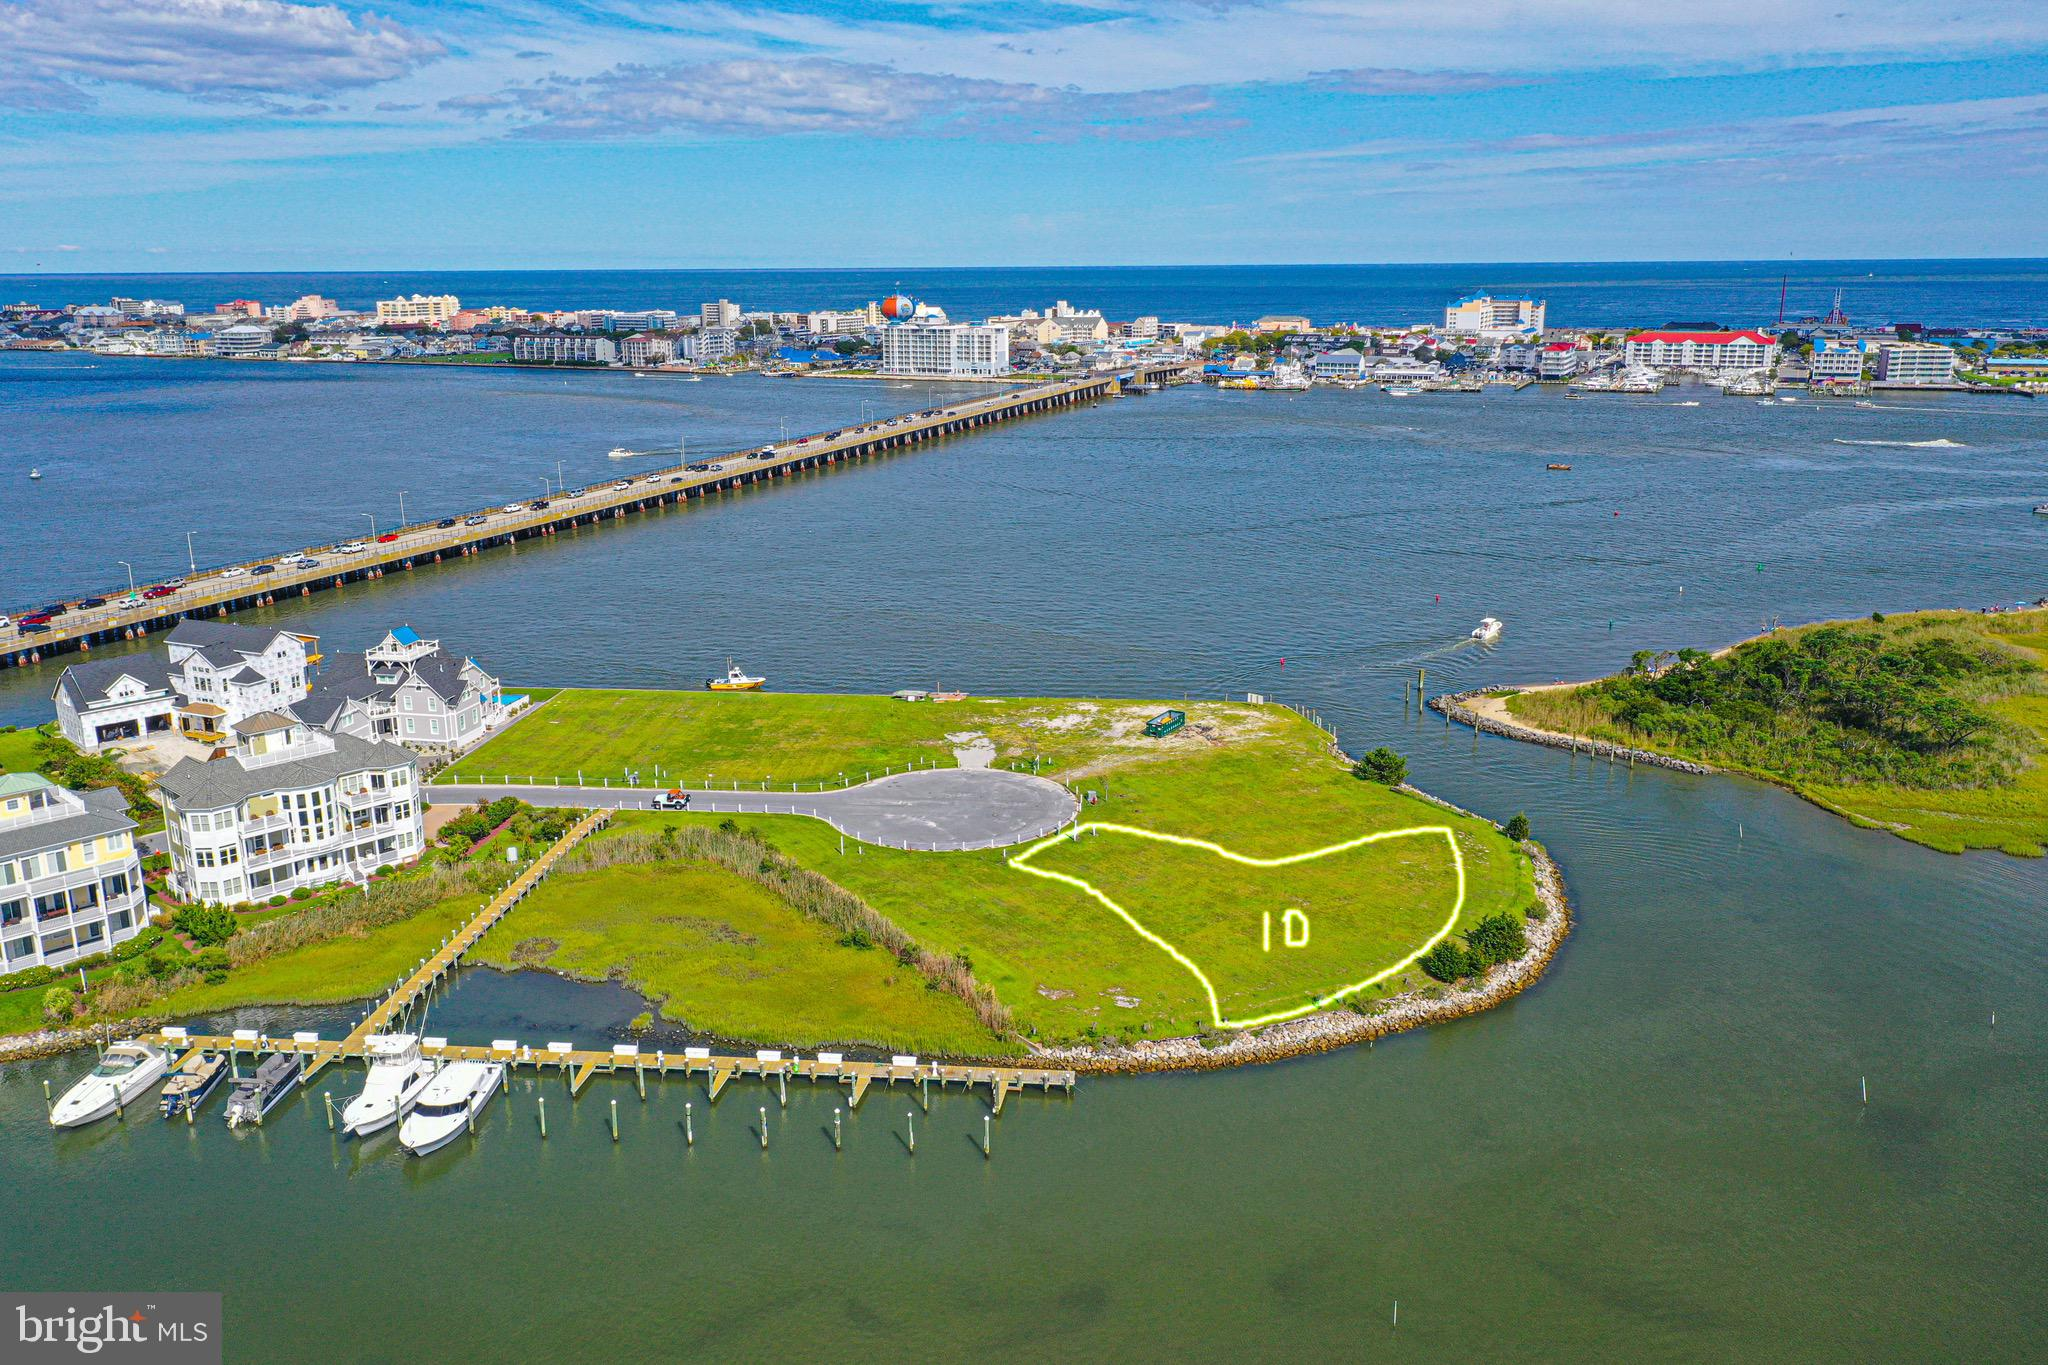 Premium waterfront lot located in a much sought after West Ocean City exclusive and private community.   Panoramic views of the ocean city inlet, ocean, and marina.  Lot conveys with a 42 ft, boat slip located inside a protective basin.  Lot 11 is also available for purchase, see mls number MDWO115502.  Lots are side-by-side and they are the  two largest lots remaining in the development.  Contact listing agent for more information and most accurate details about the property.